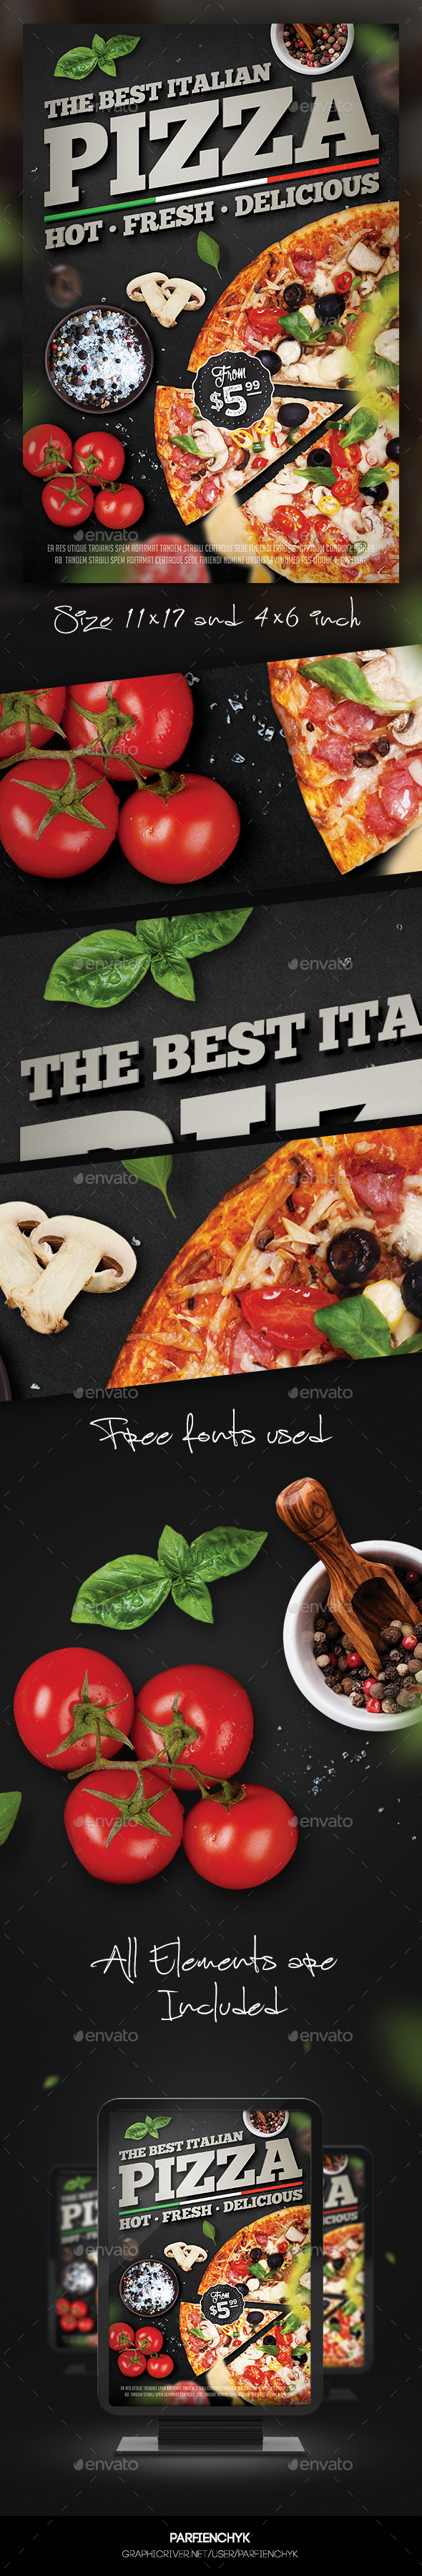 Pizza Flyer Template - Restaurant Flyers